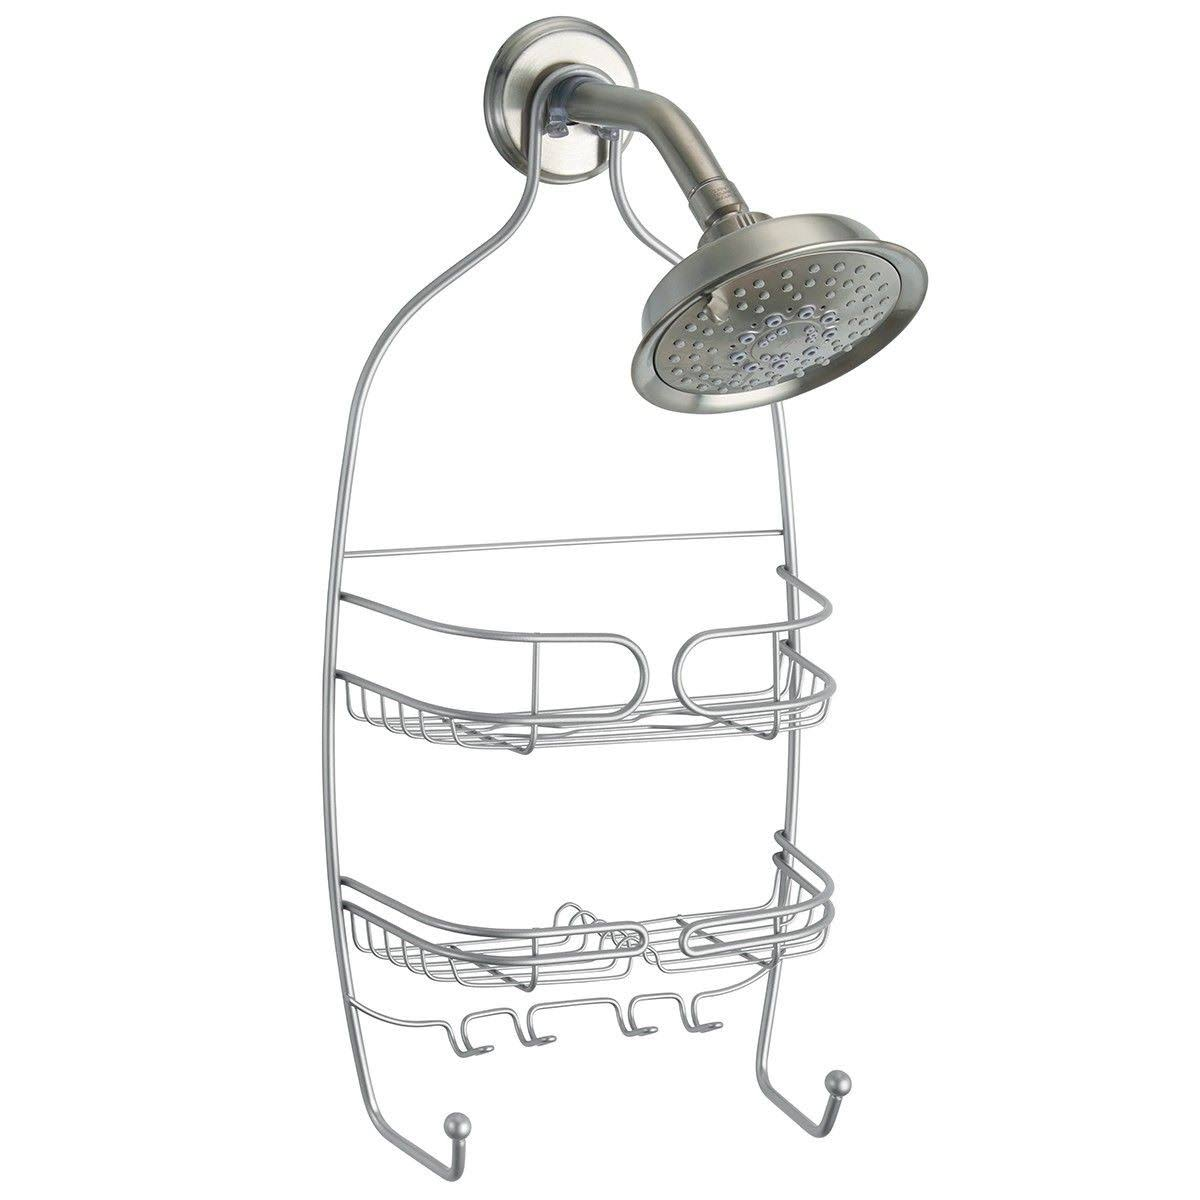 Interdesign 27910 Neo Shower Caddy - Silver